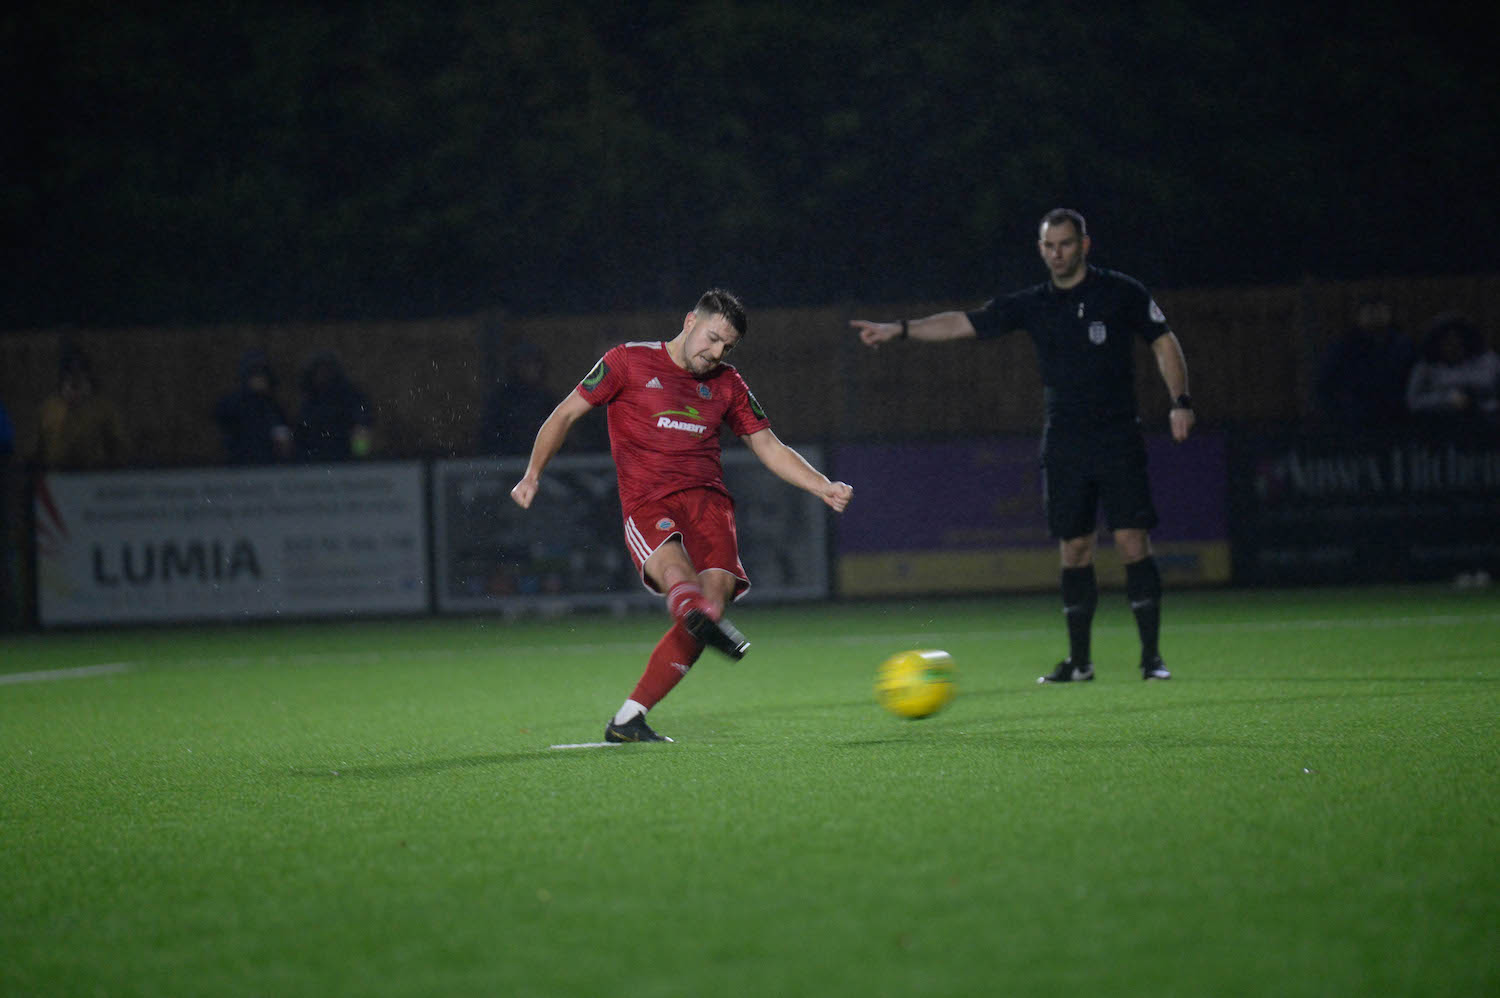 Read the full article - GALLERY | 19/20: Horsham [A] – Cup